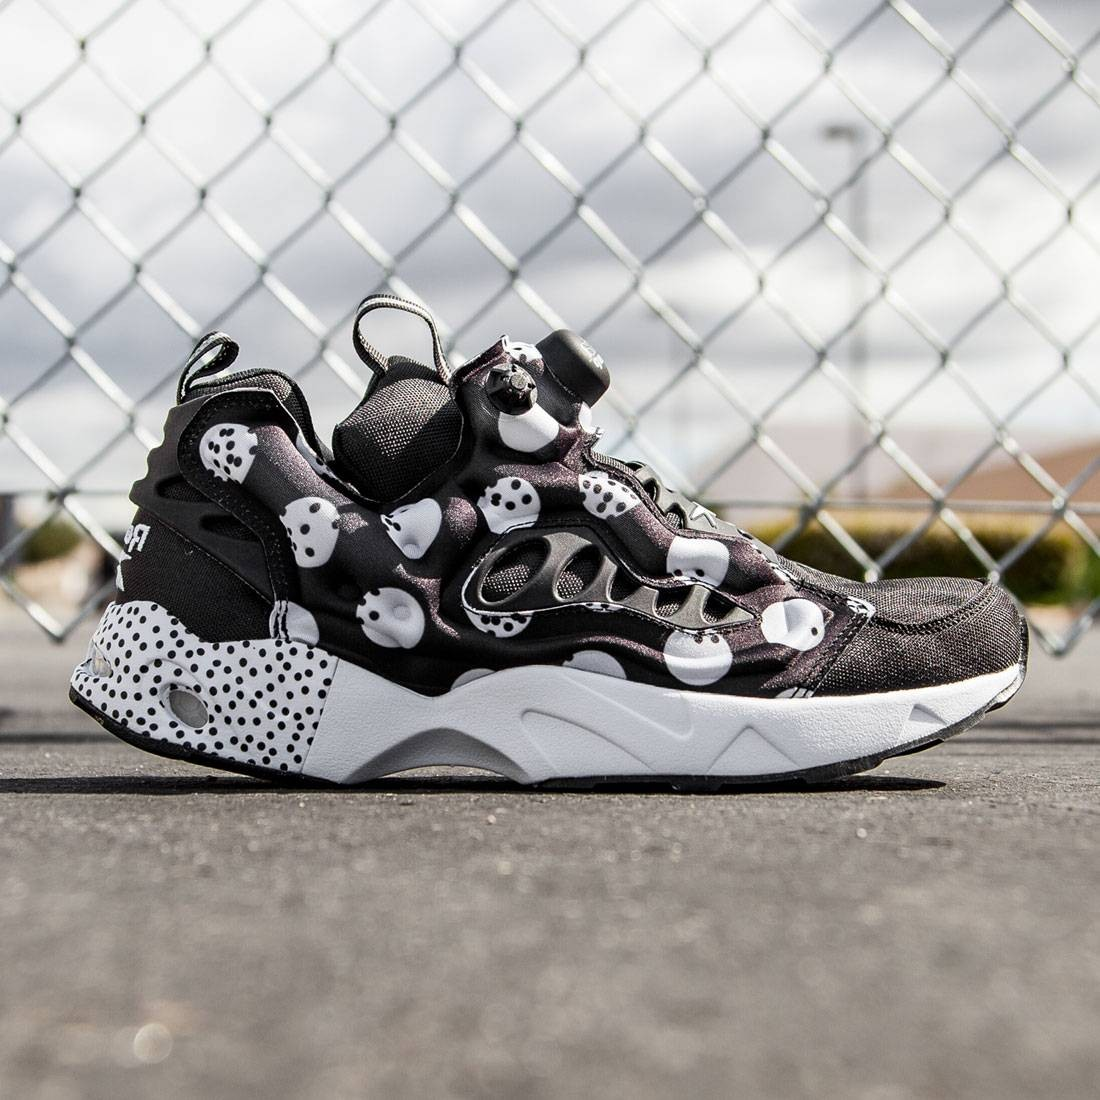 wholesale dealer 93c14 e7b3d Reebok Men Instapump Fury Road SG black white